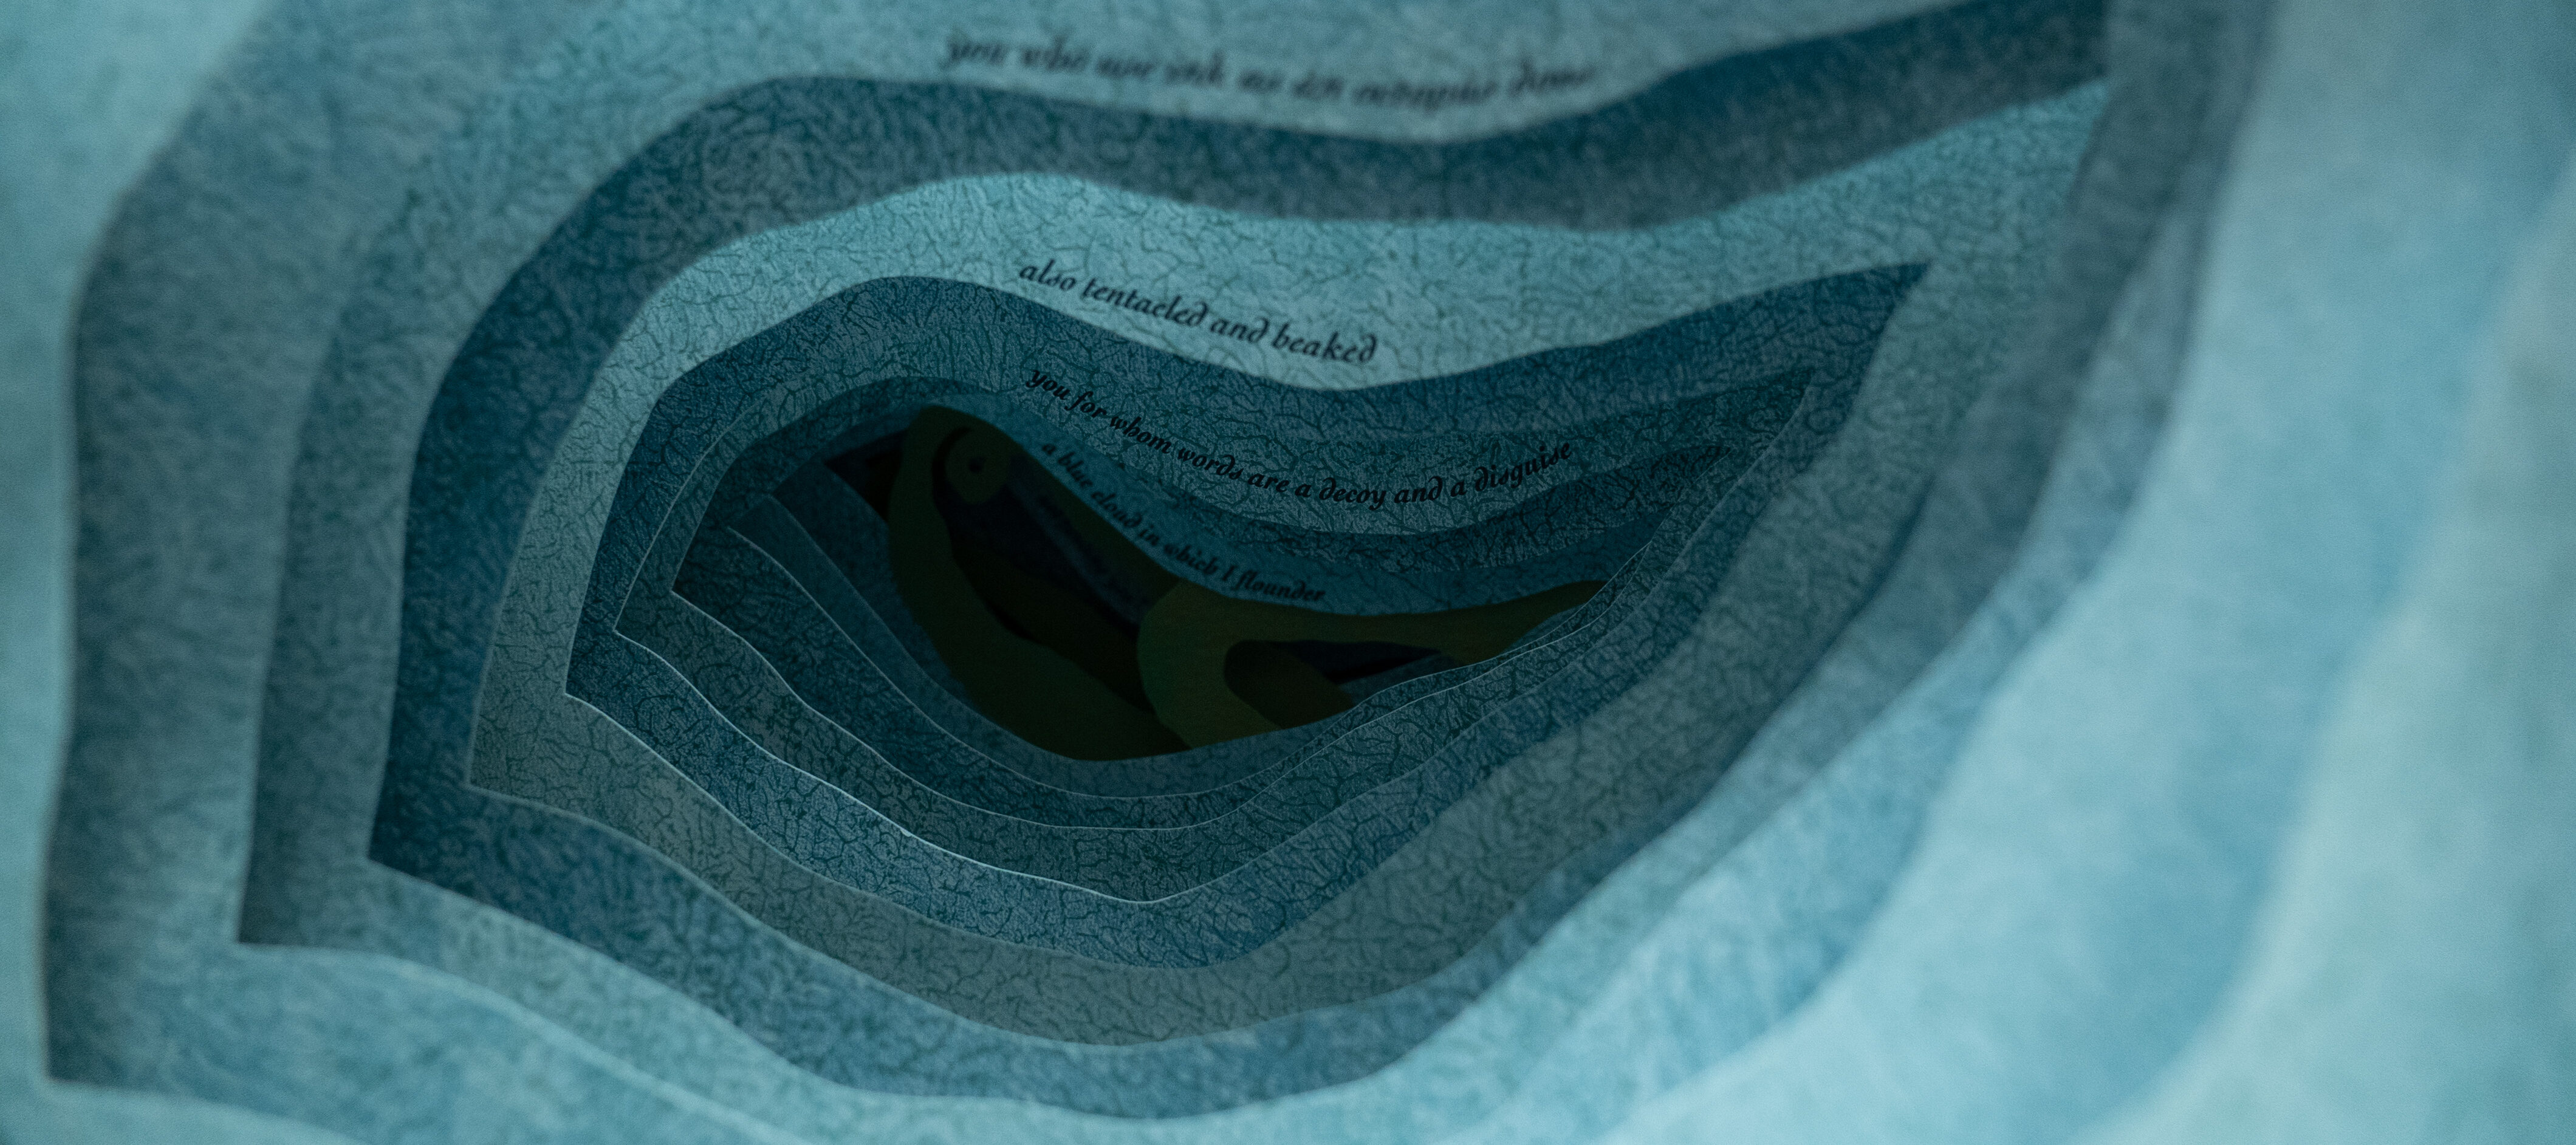 A close up photograph of an artist's book. Each layer of blue paper has an organic, irregular shape cut out of the middle so the layers form a tunnel. A line of text is printed in small type on each page, receding into the tunnel like an underwater cavern.